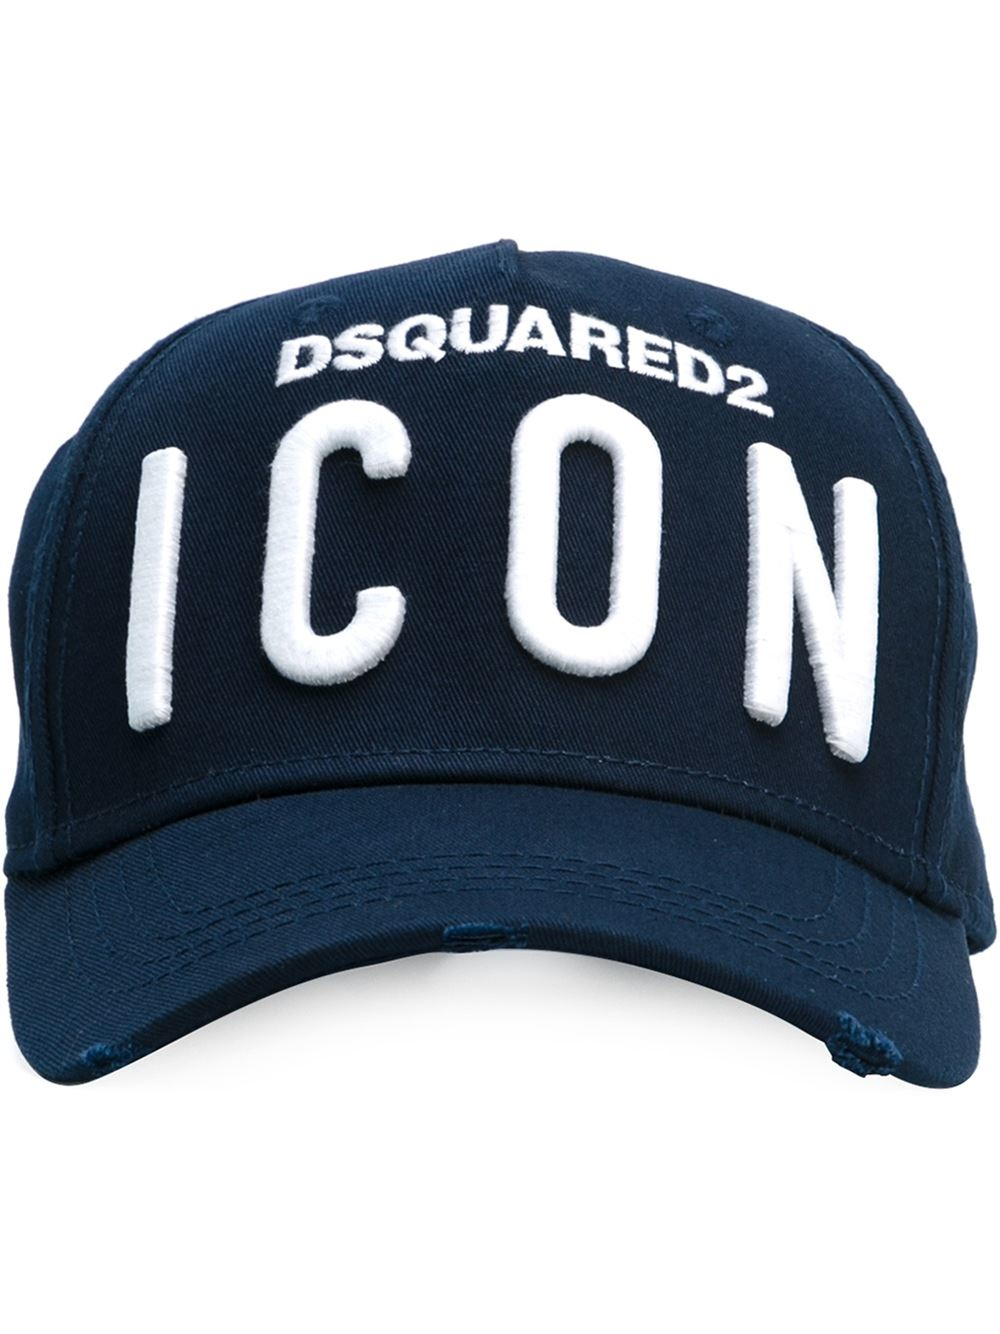 Lyst - DSquared² Logo Icon Patch Cap in Blue for Men 1f15350dc4c